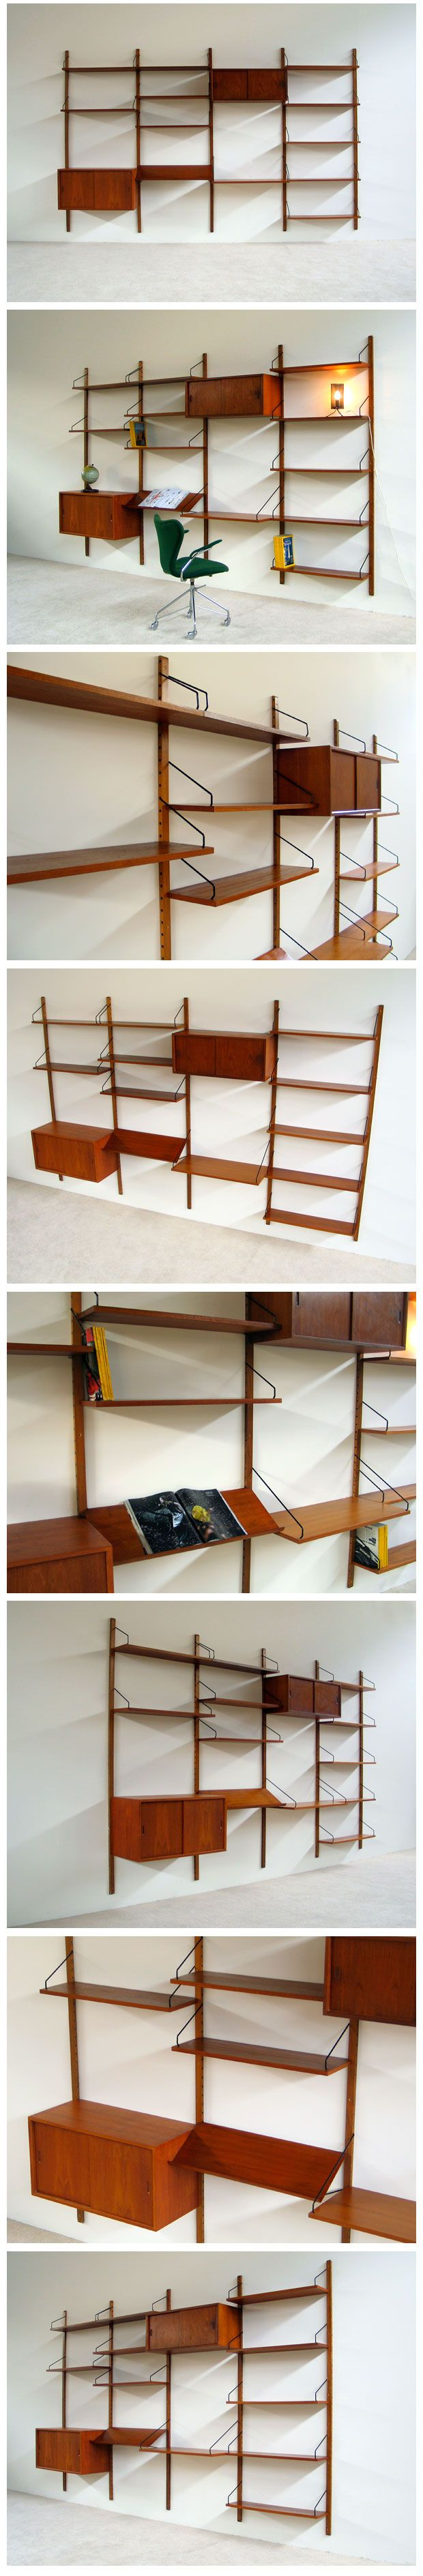 Royal System Wall Unit by Poul Cadovius, teak, Denmark 1950s